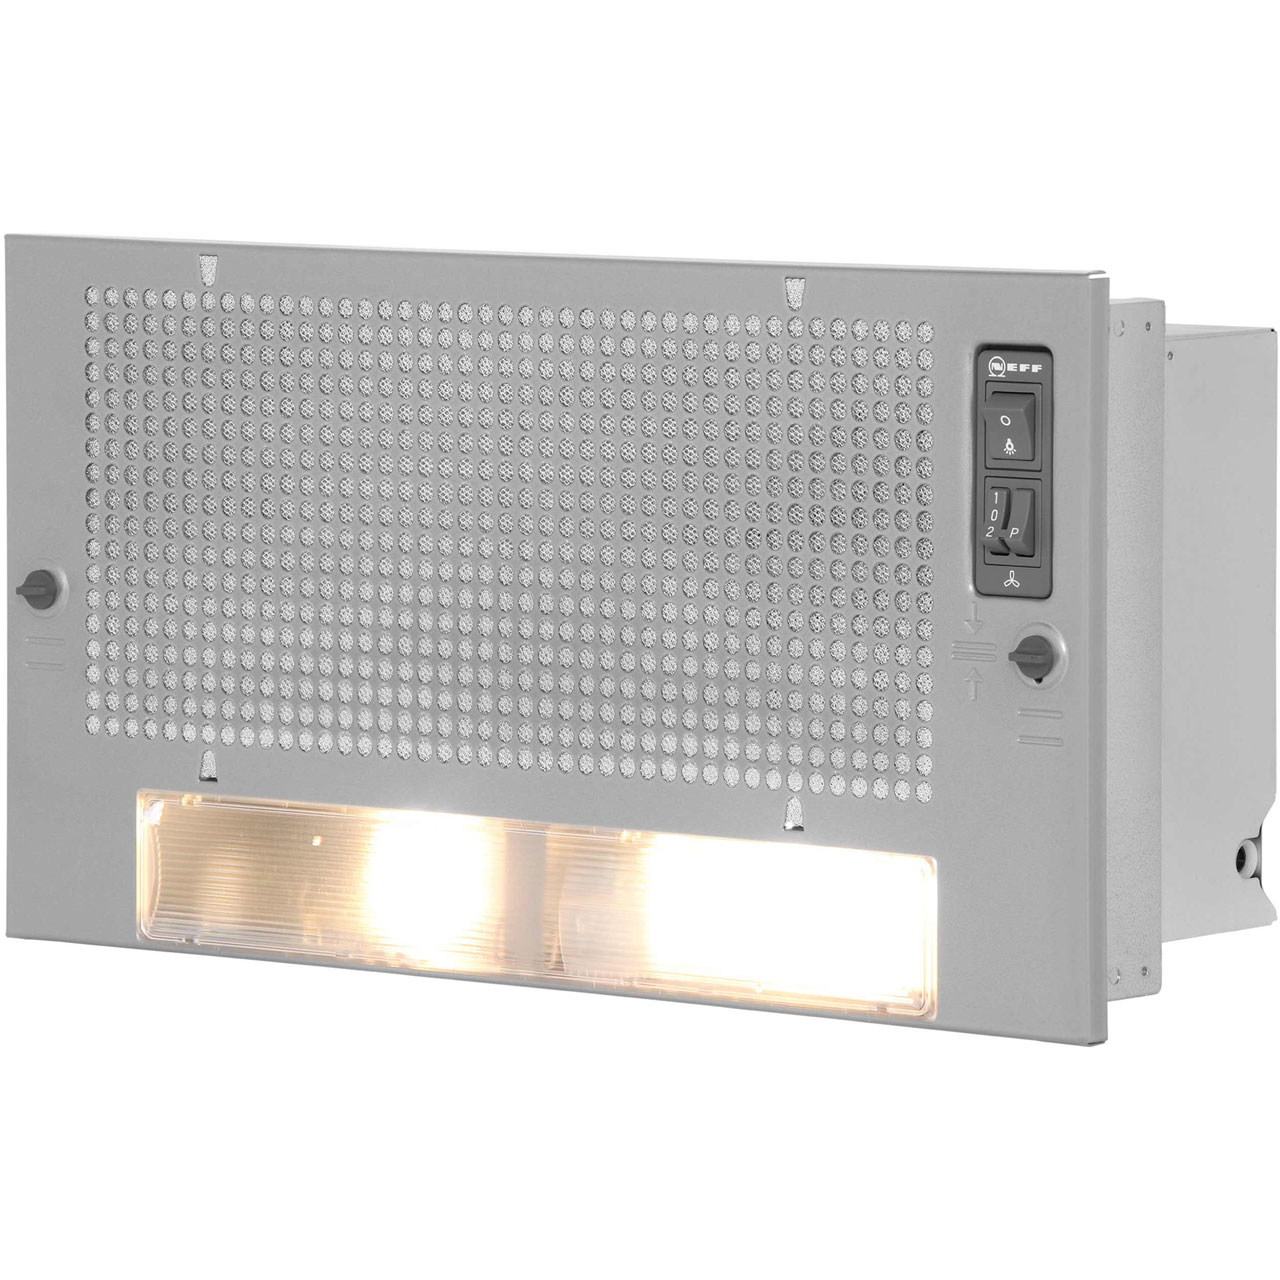 Neff D5625X0GB Integrated Cooker Hood in Silver